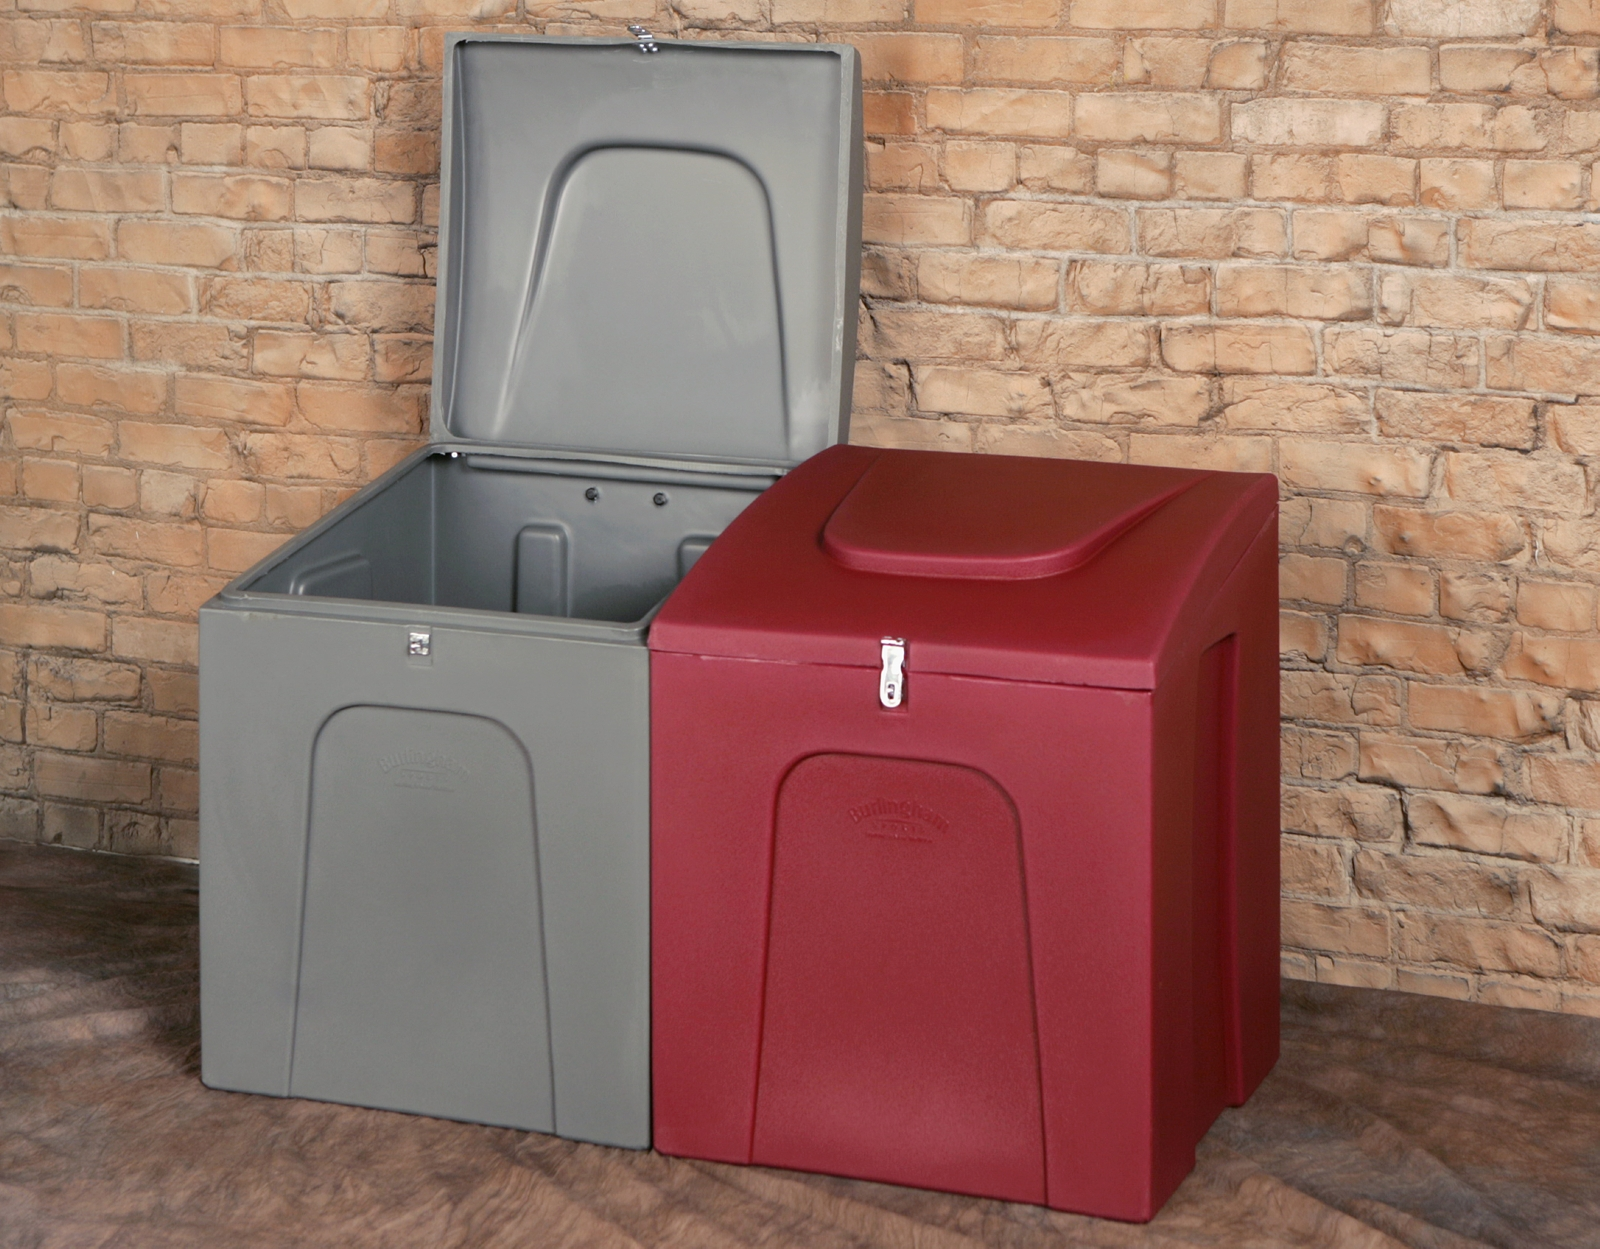 BURLINGHAM SPORTS Storage Bin